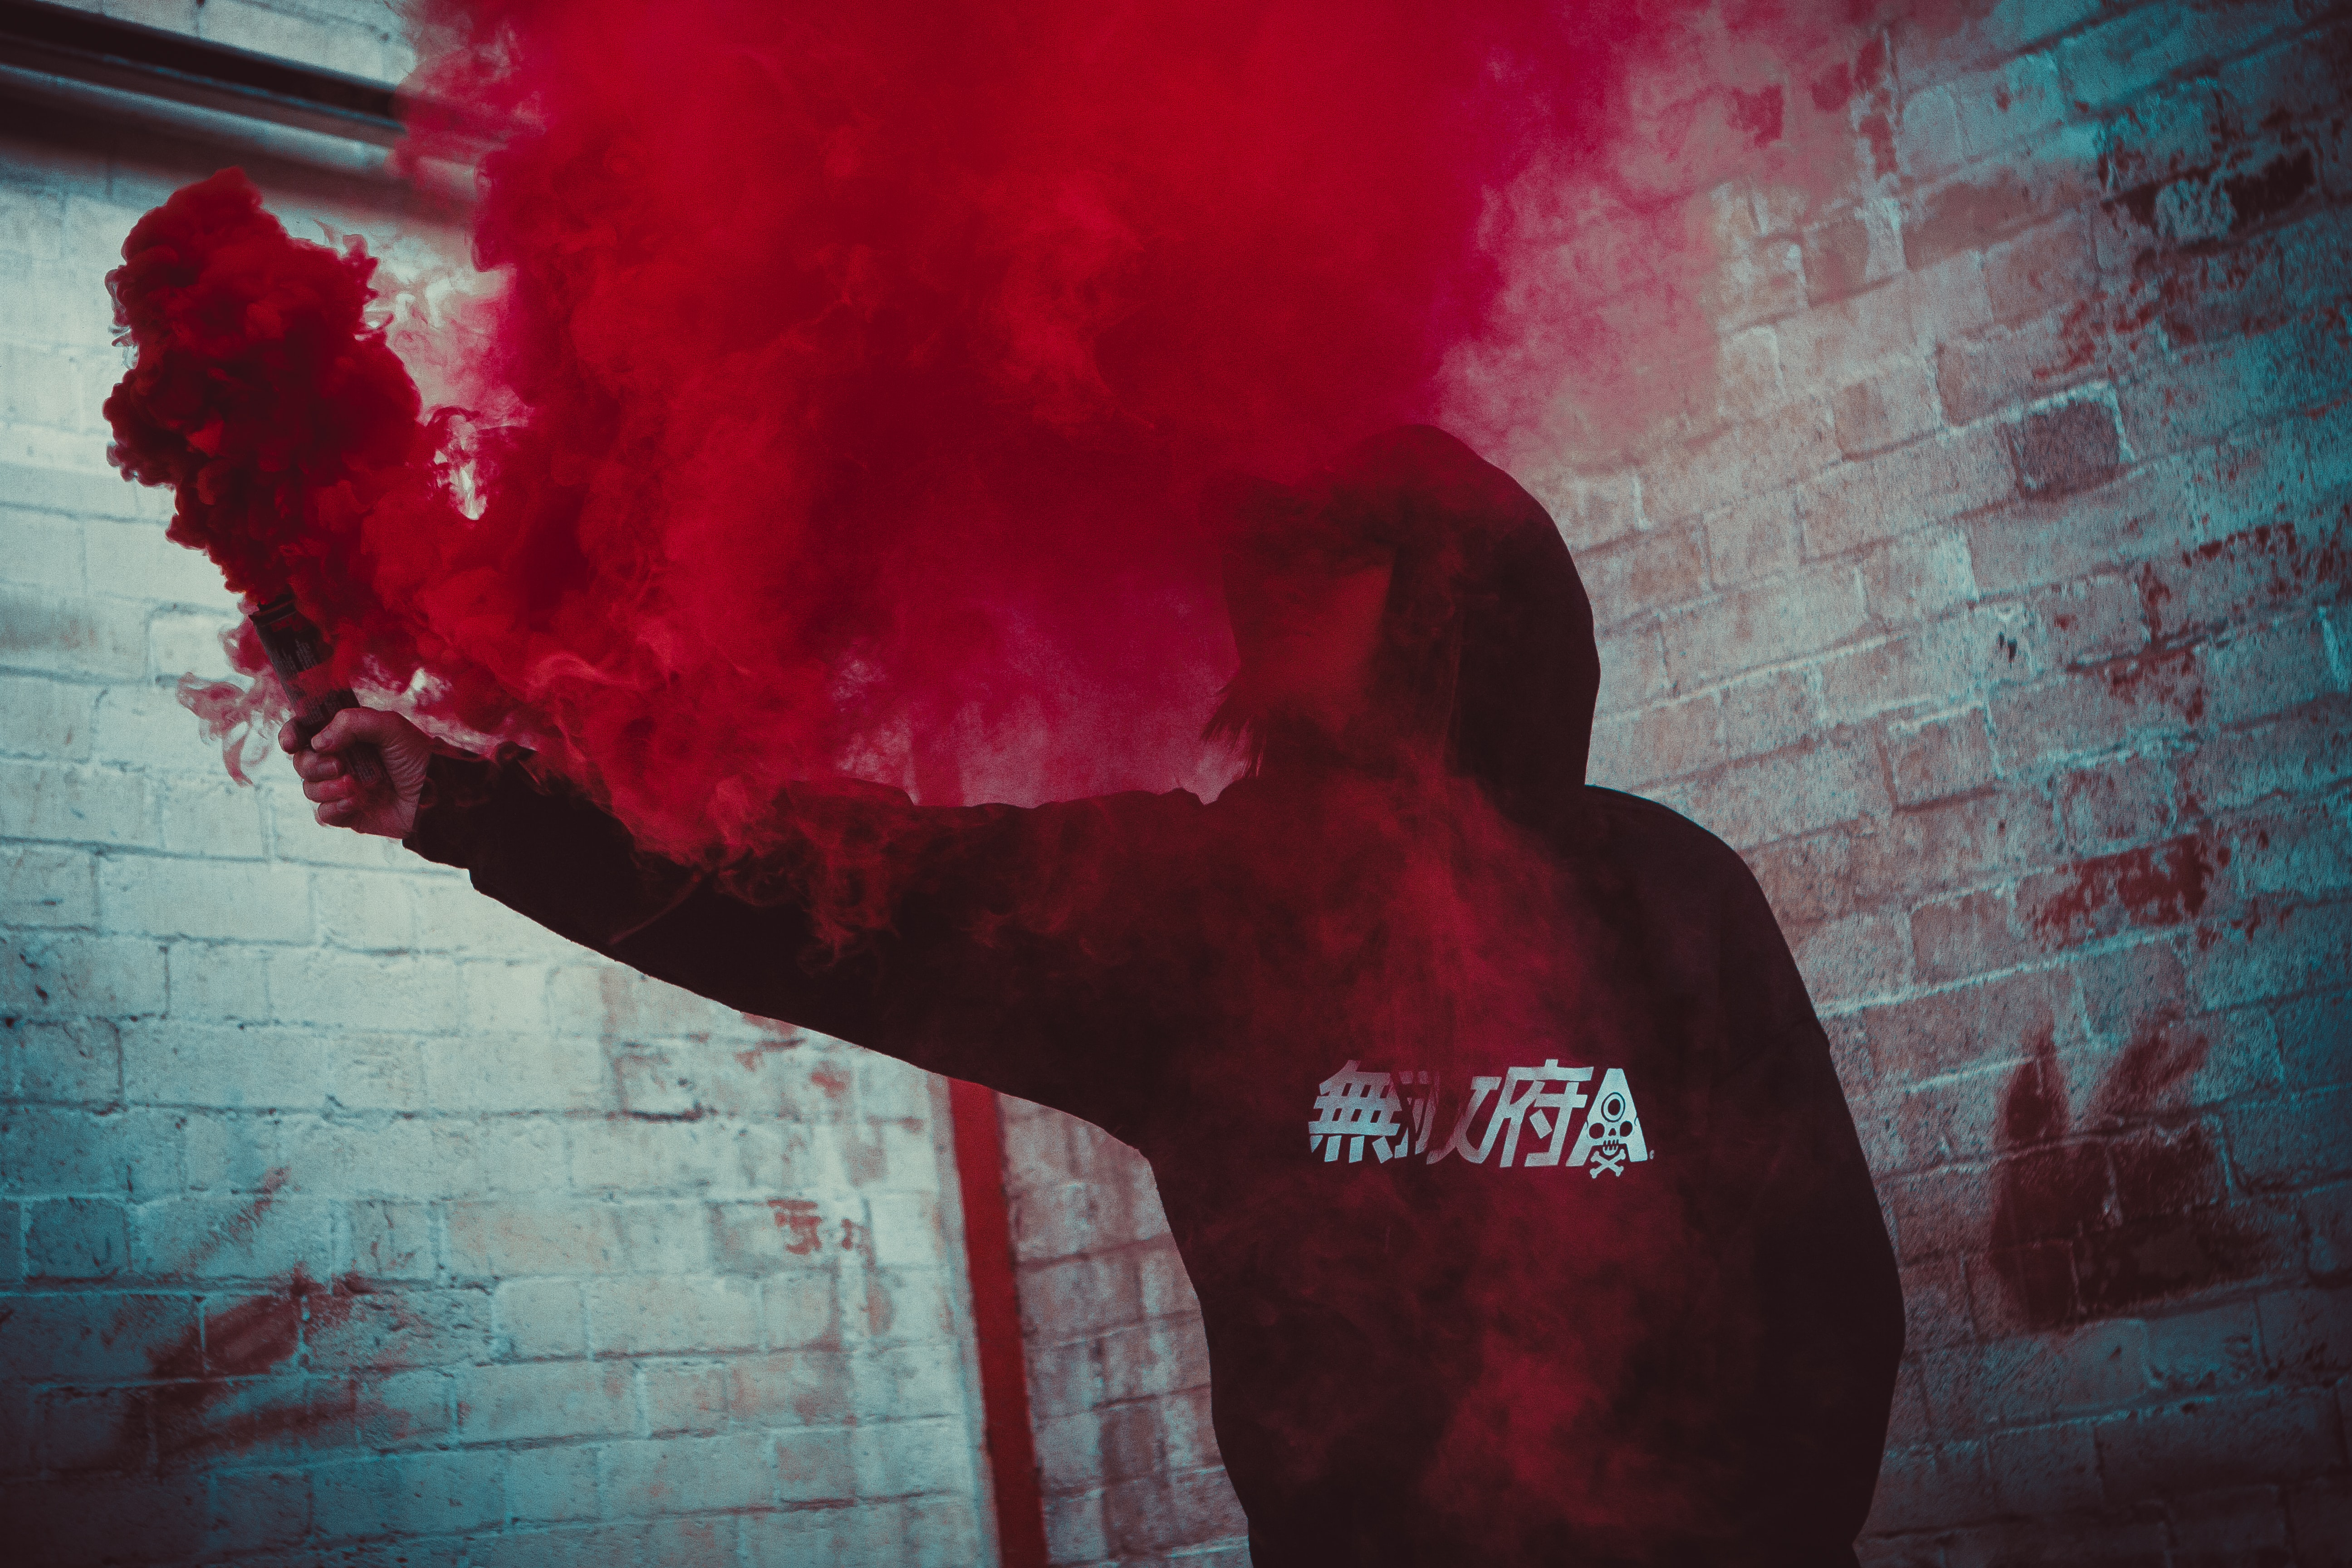 person holding red smoke bonb